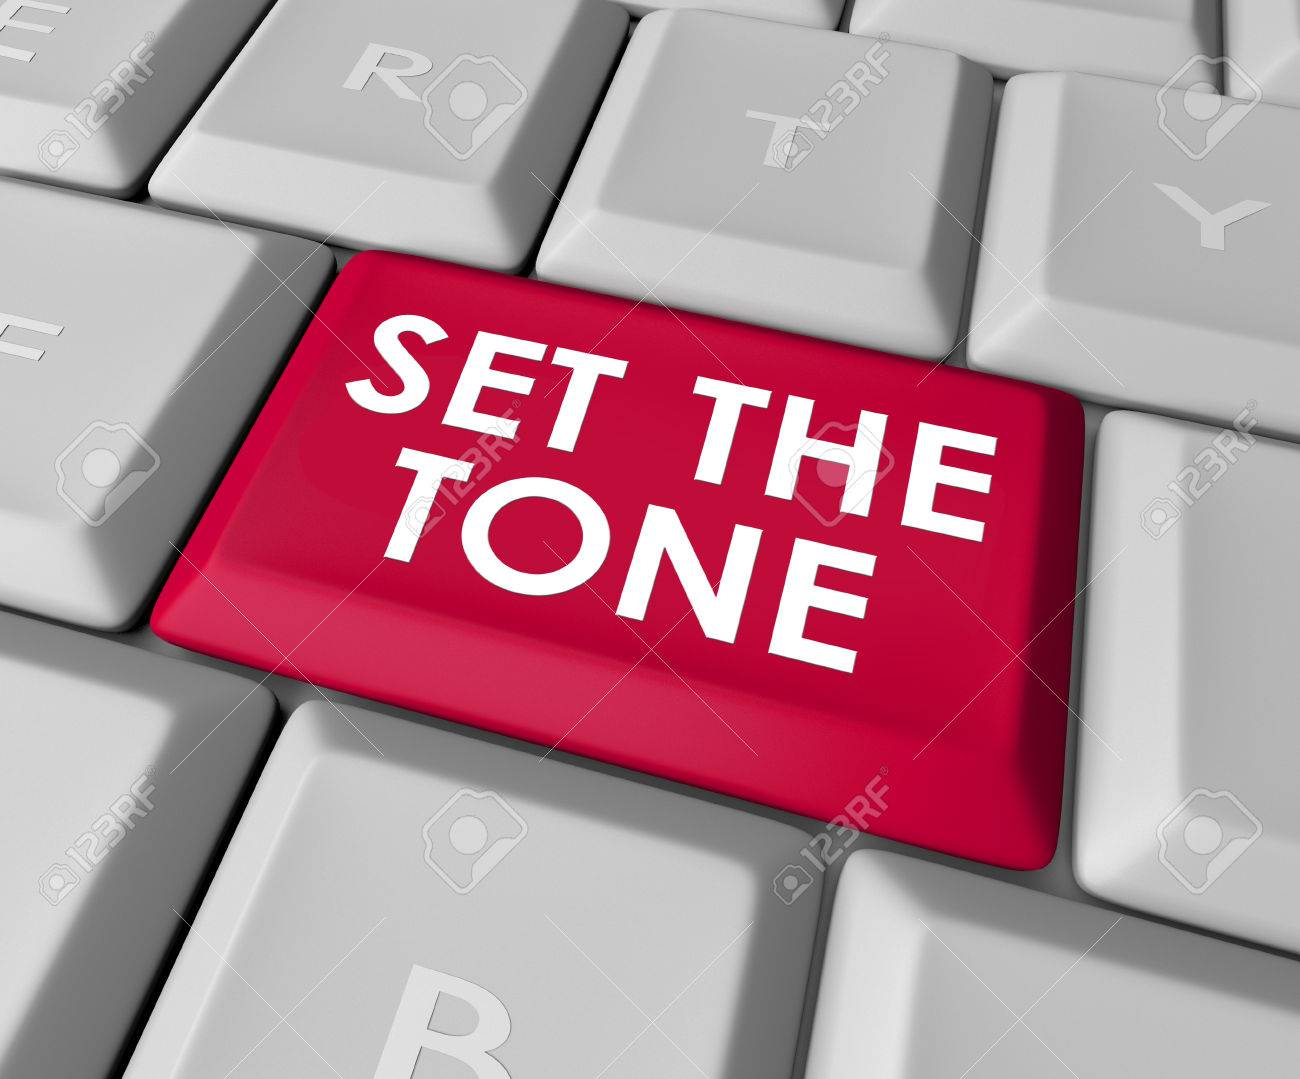 Set The Tone Words On A Computer Keyboard Button Or Key To Inject Meaning  In Your Message In Text Or Email Stock Photo, Picture And Royalty Free  Image. Image 32749712.